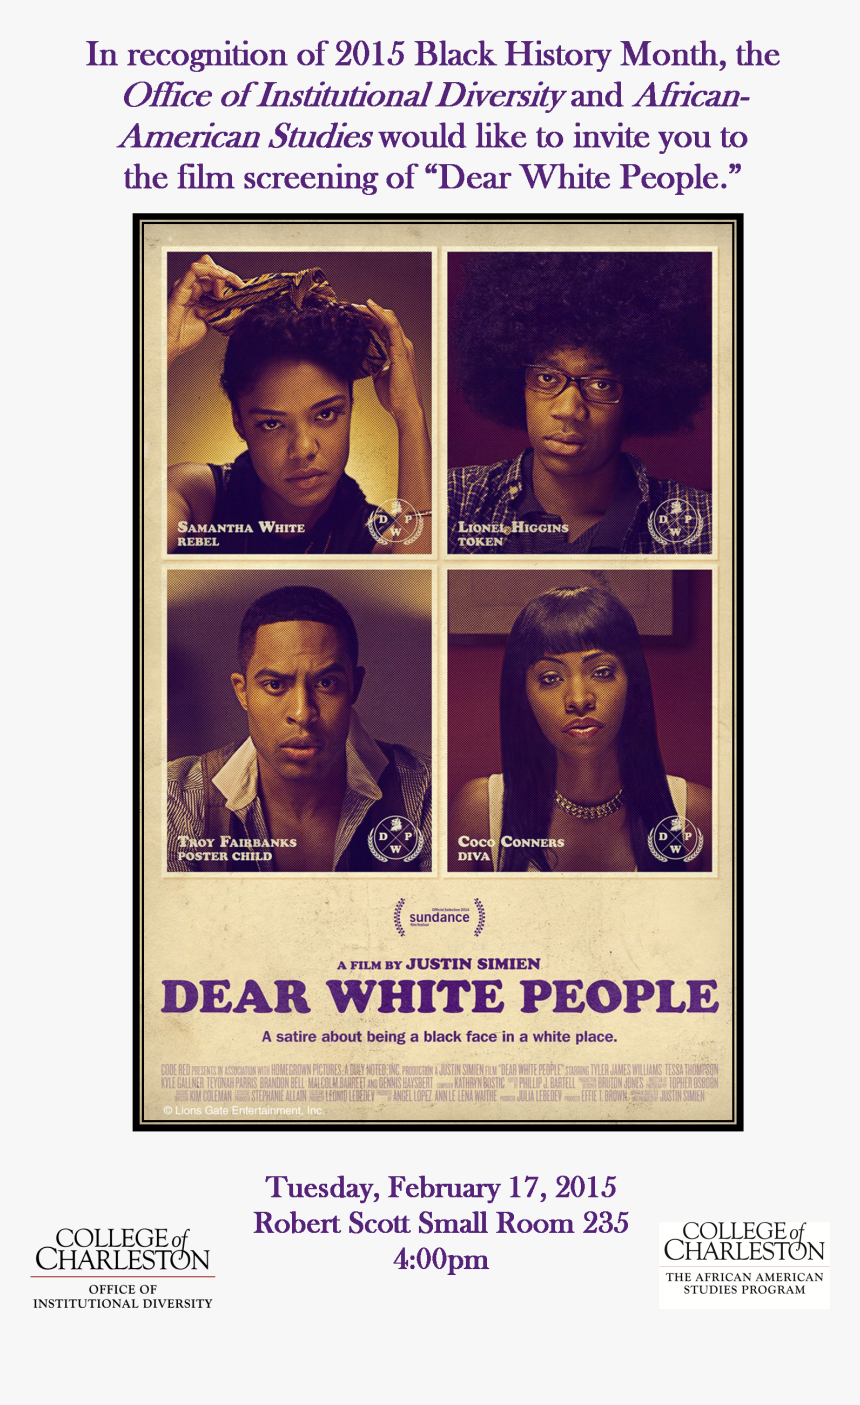 Dwpfeb17poster - Dear White Peoples Film, HD Png Download, Free Download